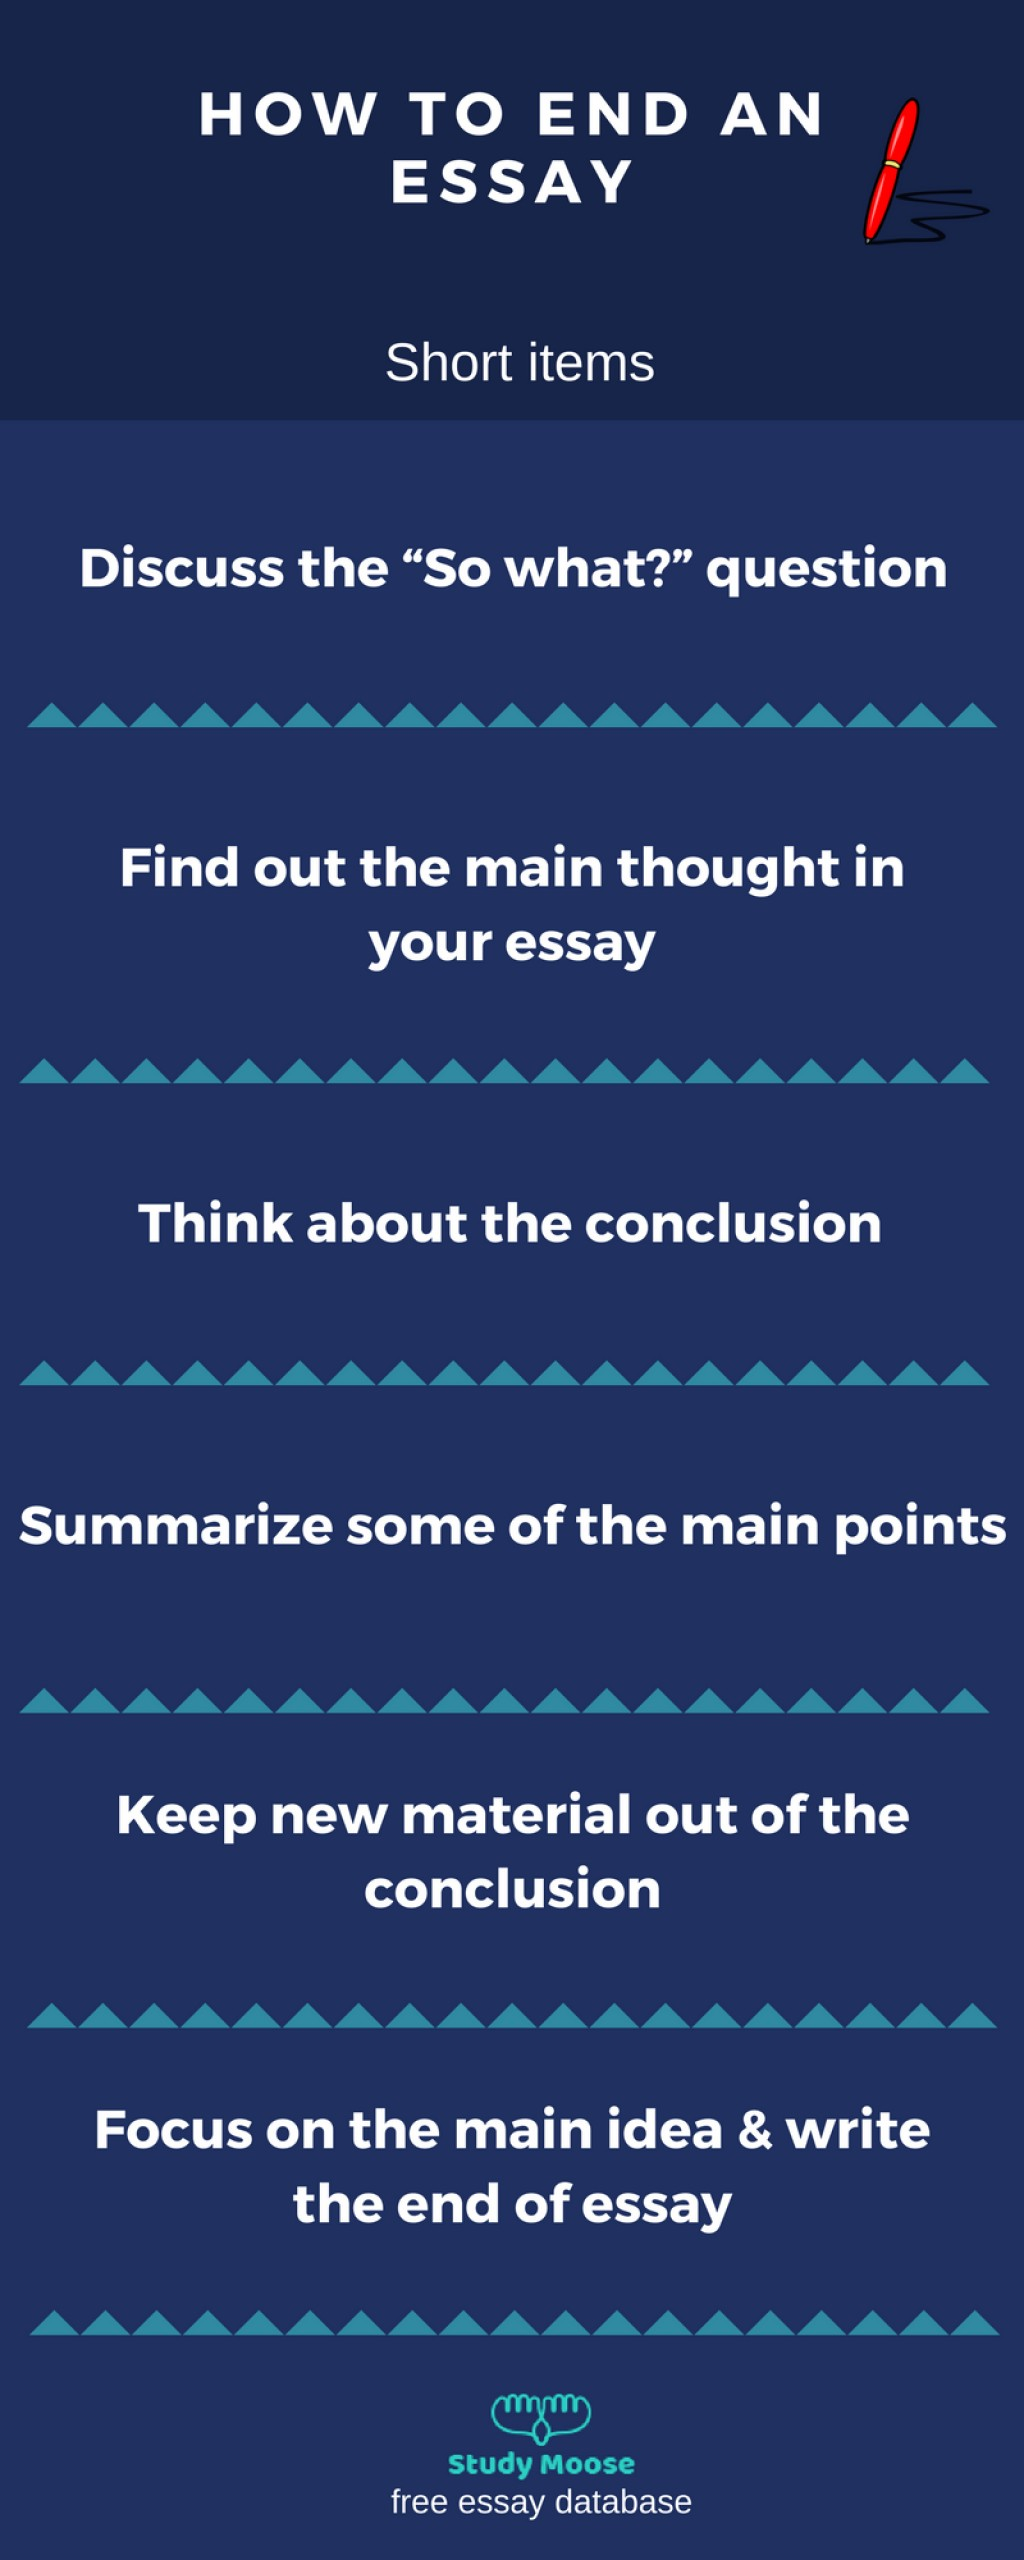 003 How To End An Essay Example Paragraph Outstanding A In Start Conclusion Persuasive Write Expository Large